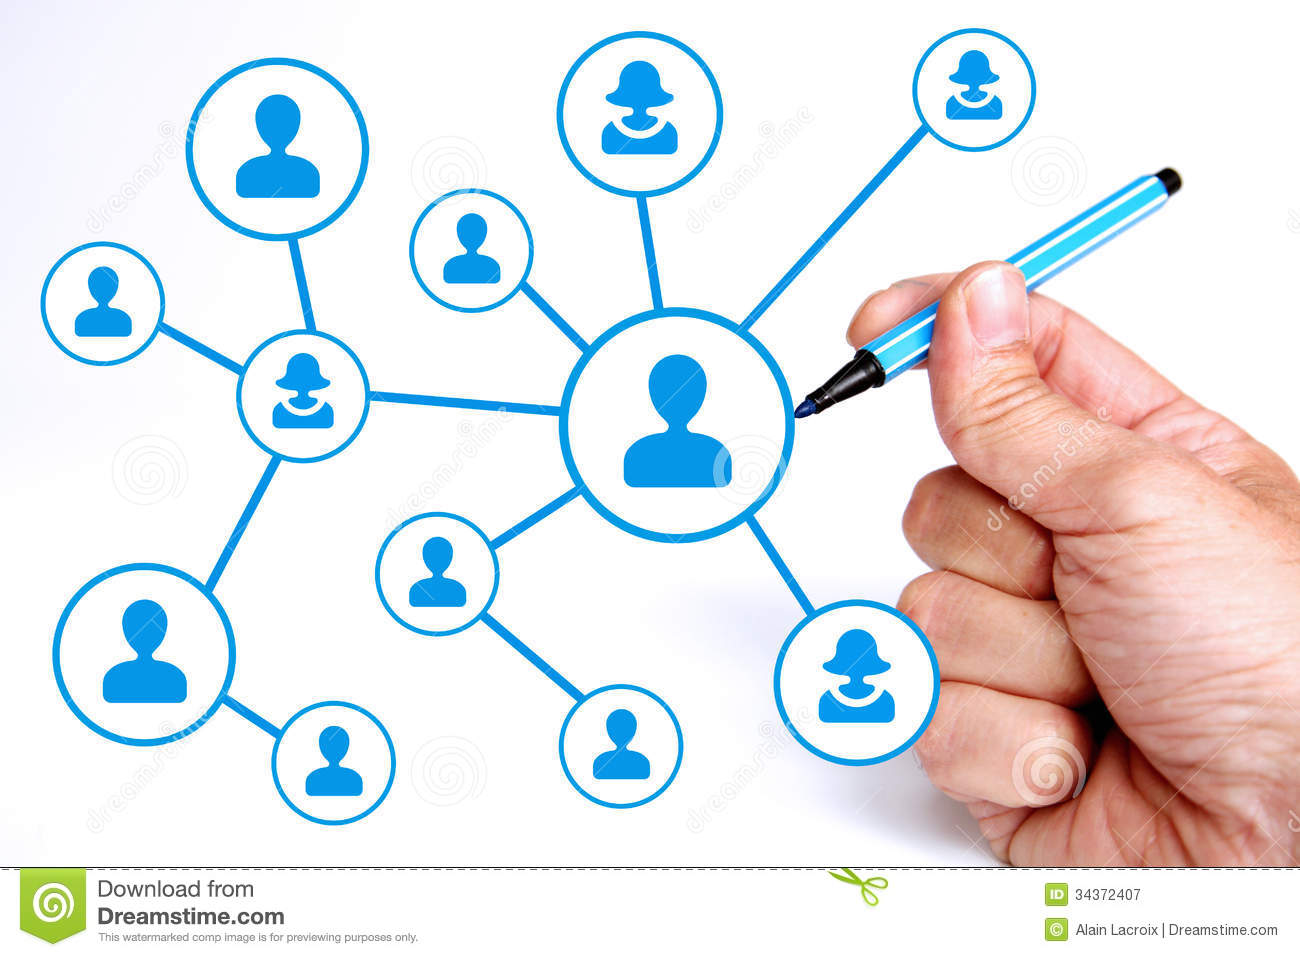 Network Connections Royalty Free Stock Photography - Image: 34372407